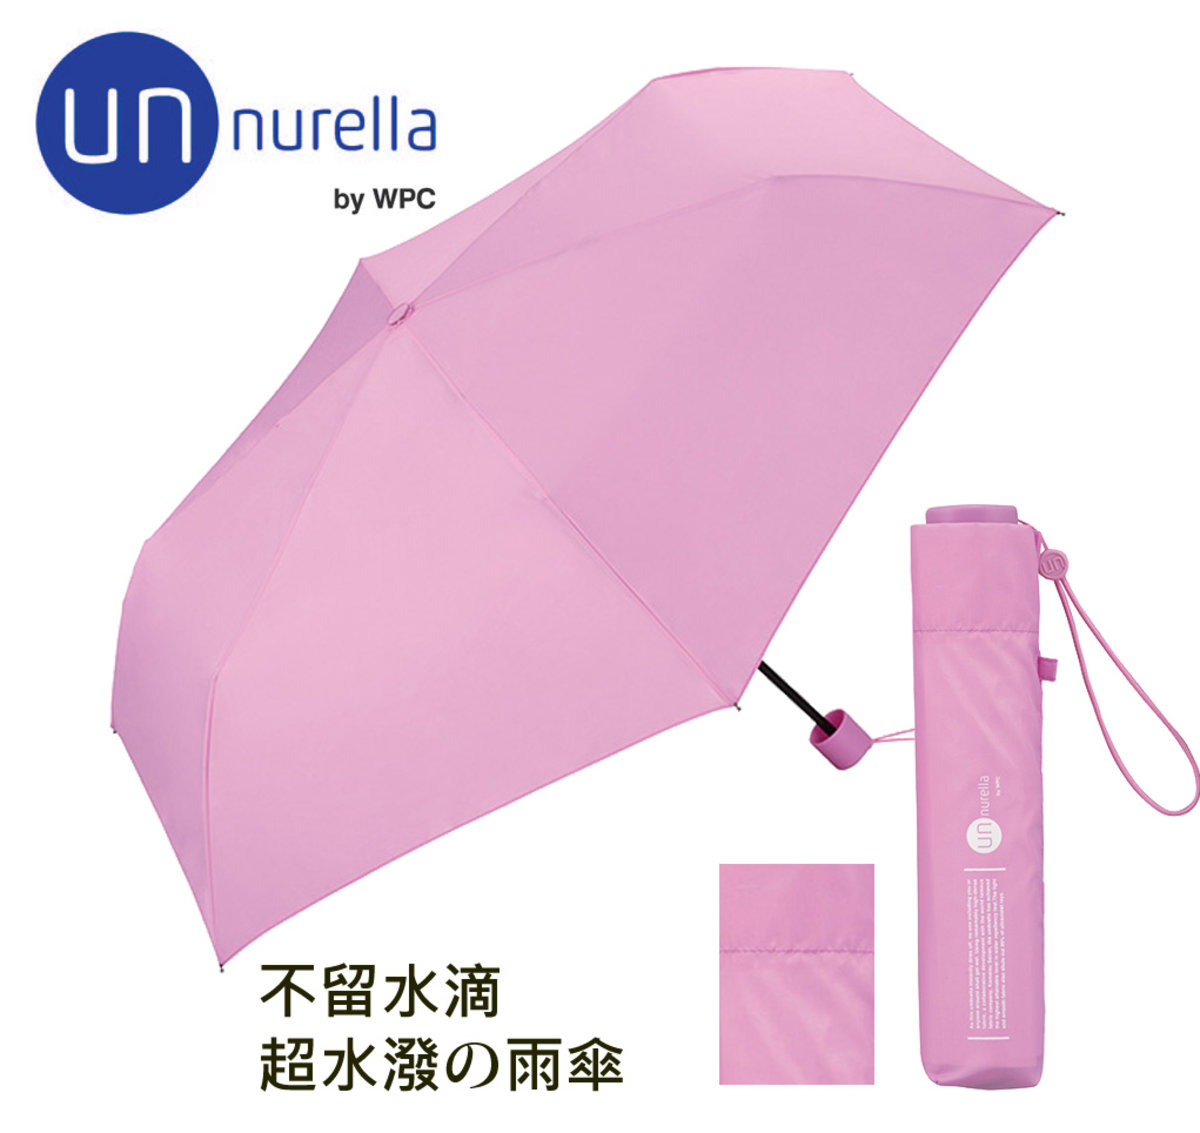 Clear all rain drop in a second ‧ Umbrella specialist from Japan - Unnurella by WPC UN-106-PK Folding Umbrella